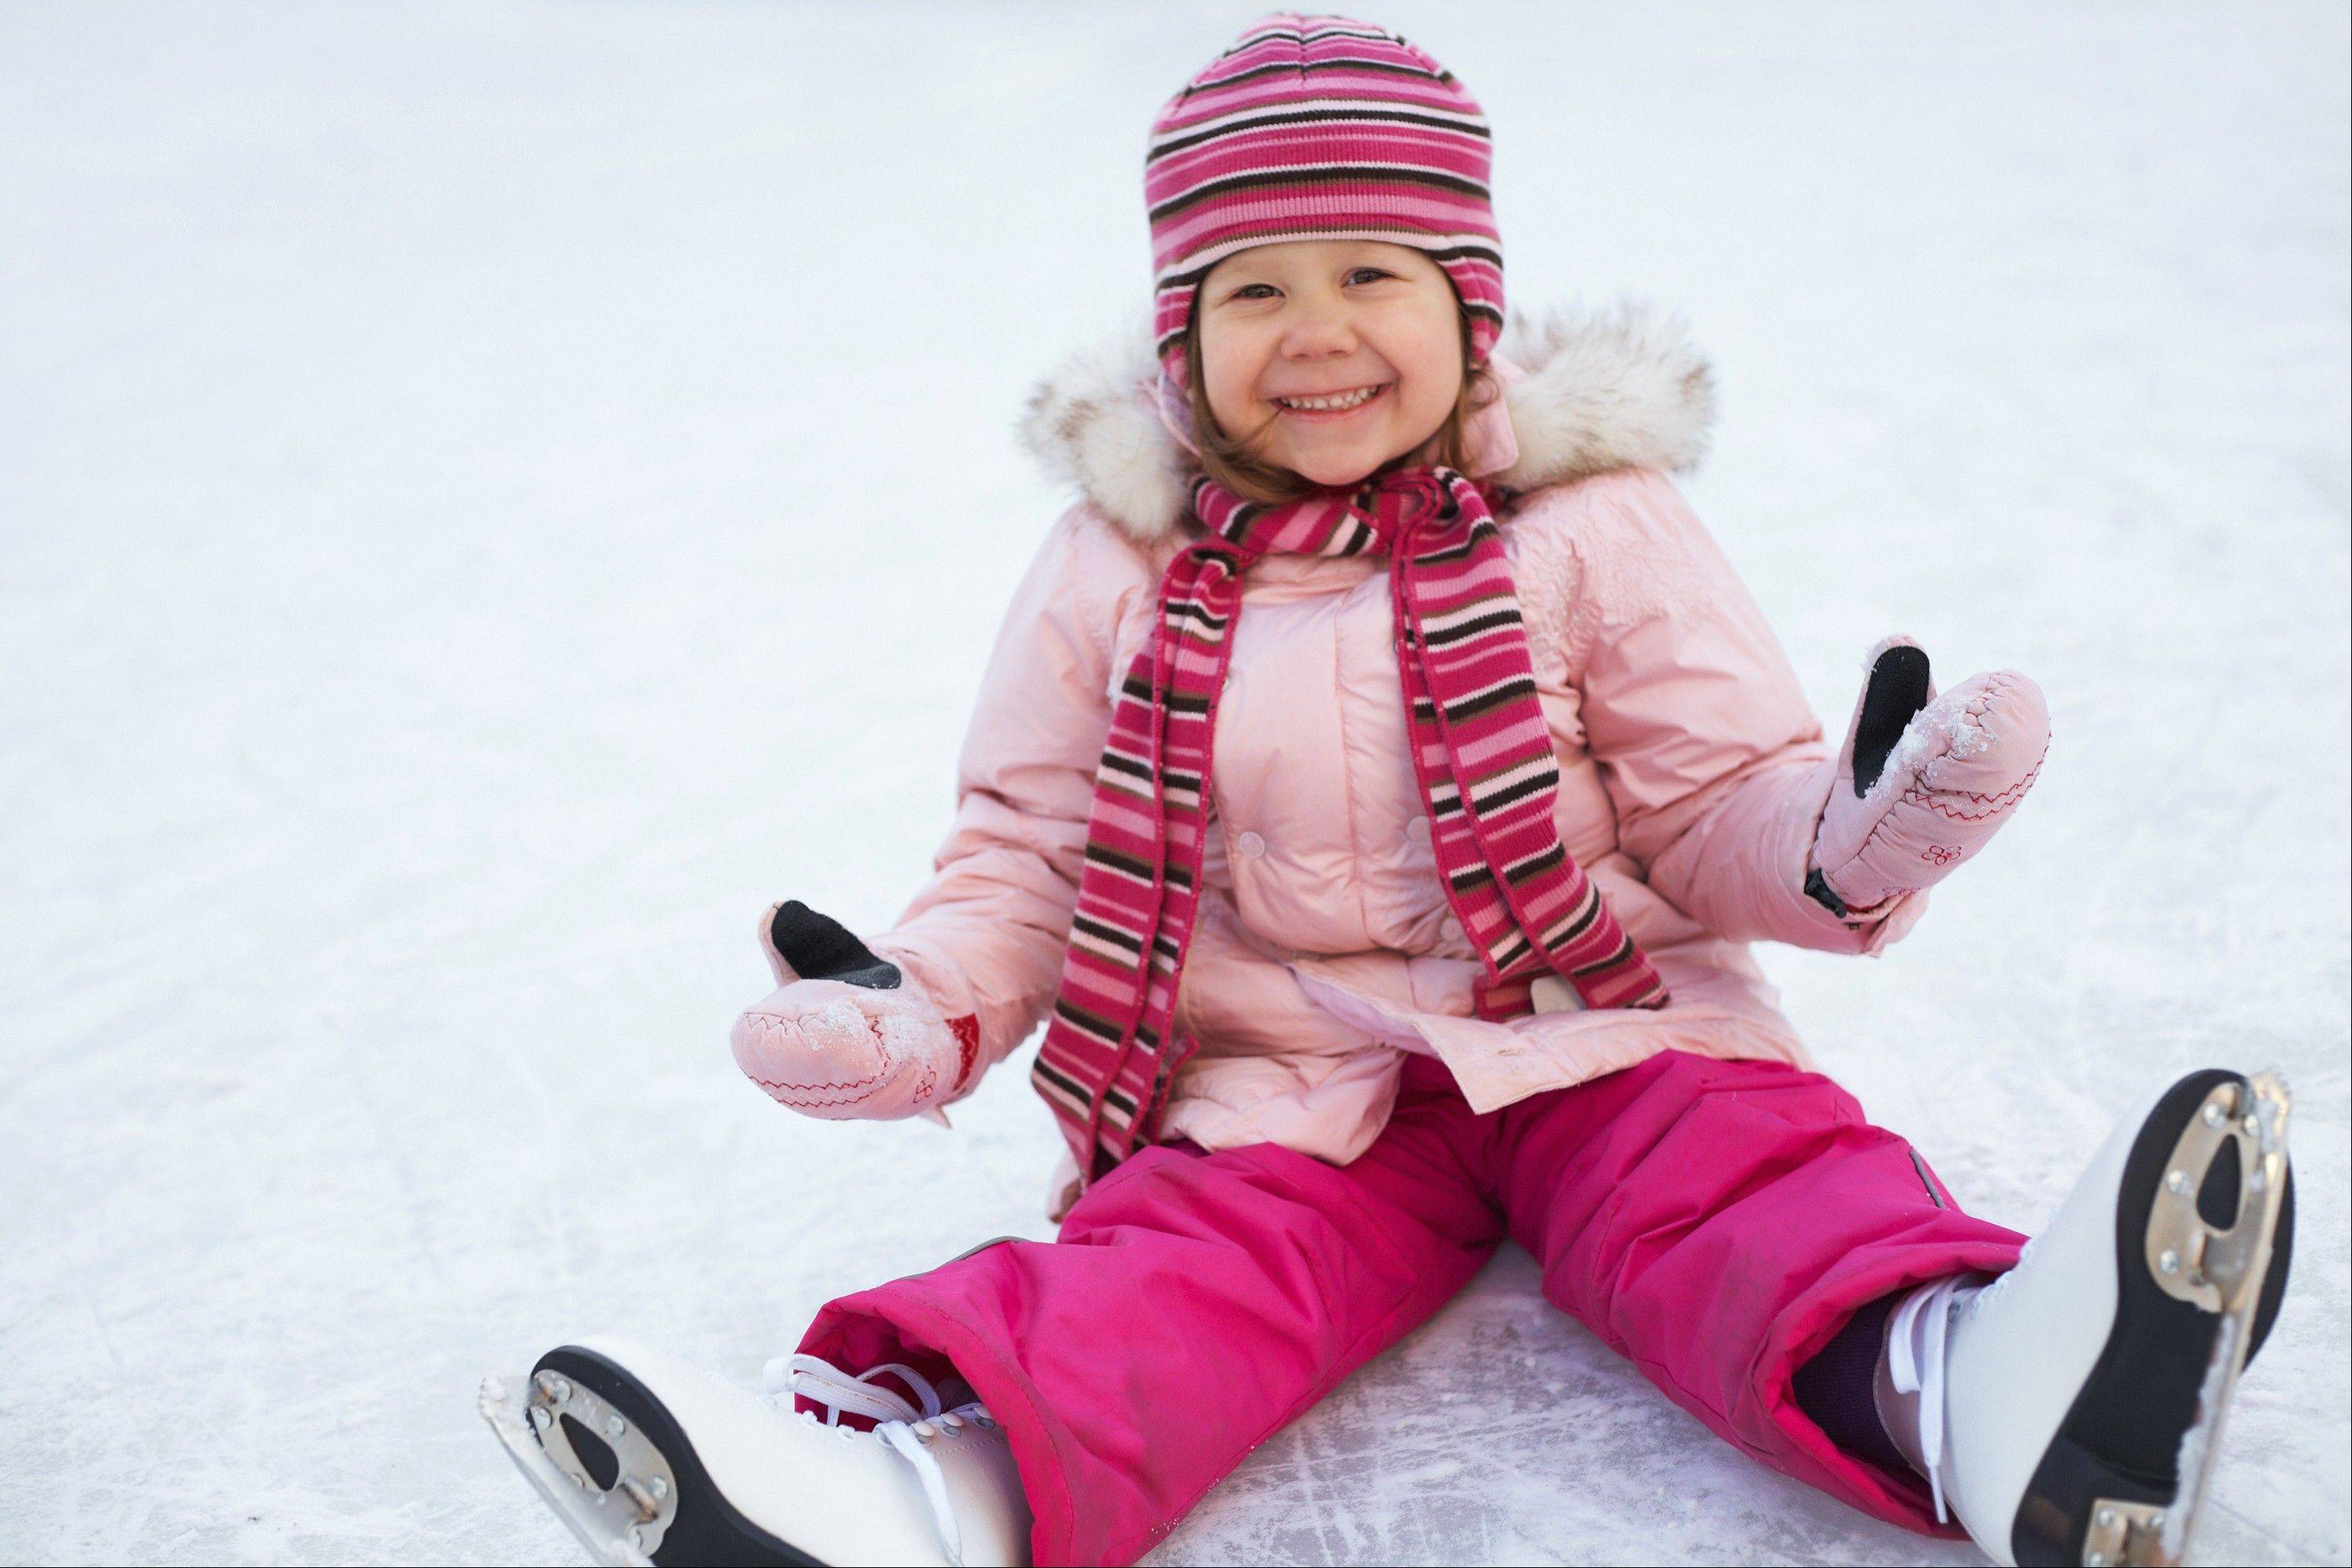 Skaters of all ages and abilities are invited to take a turn on the ice at area ice rinks this season.